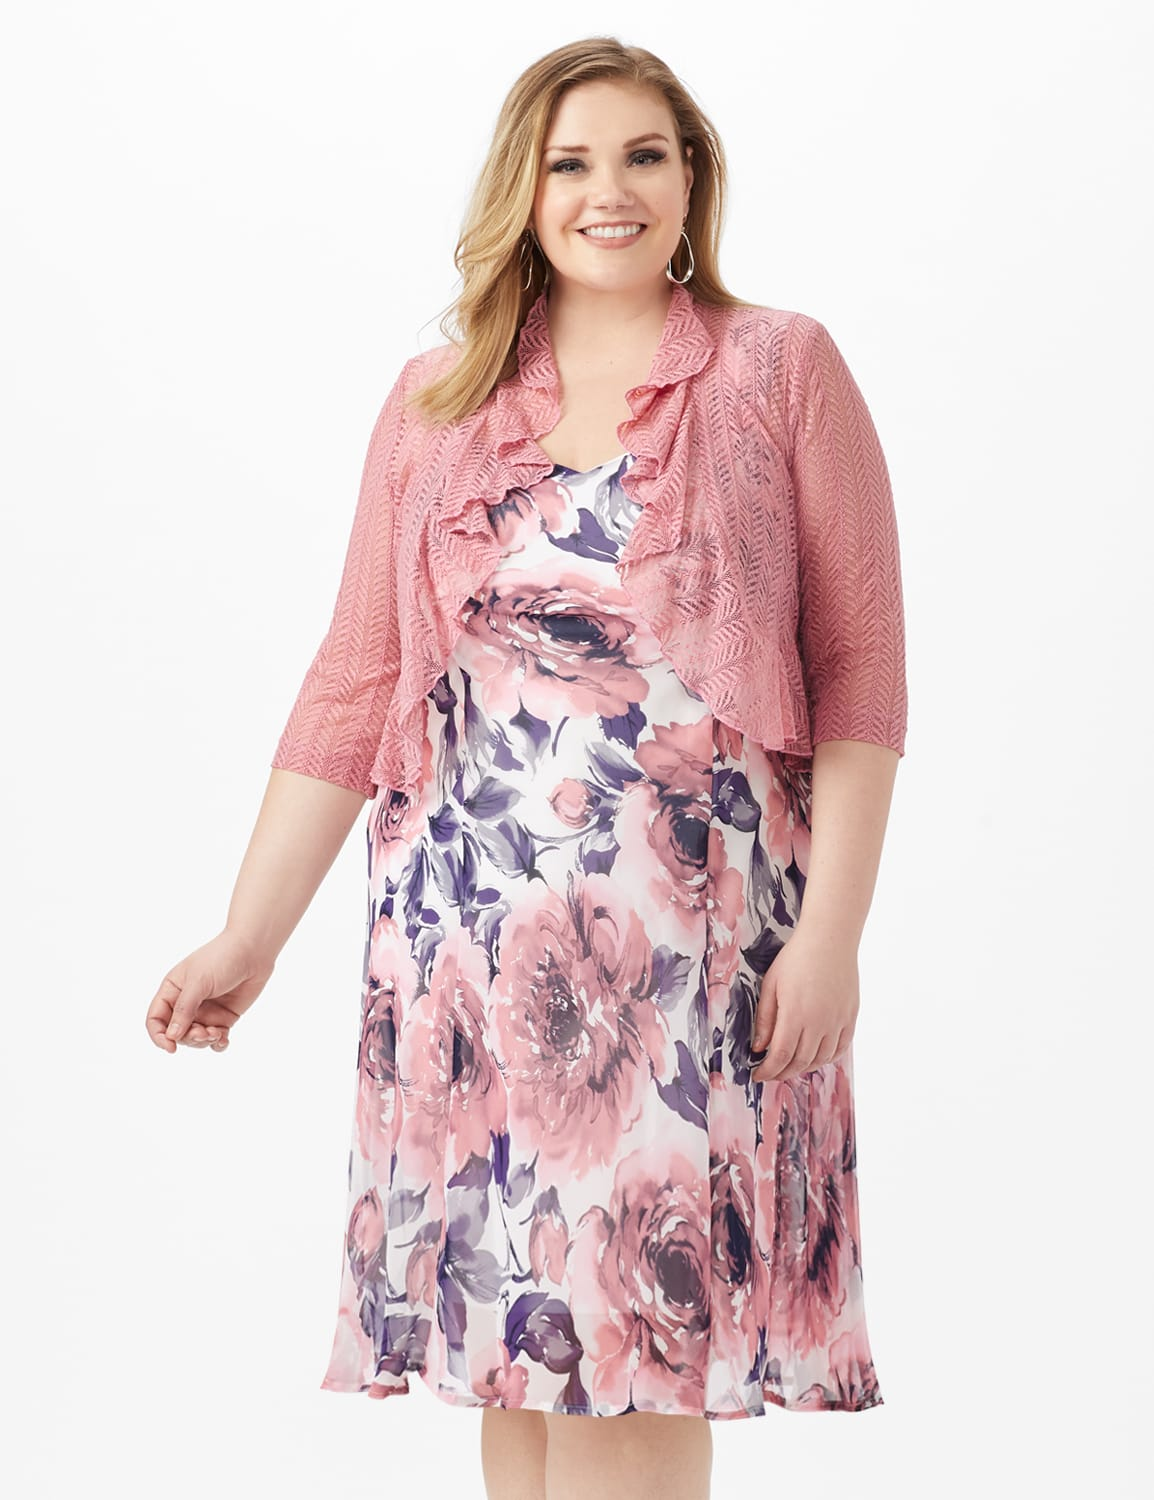 Floral Chiffon  Dress with Lace Shrug - Ivory/Mauve - Front